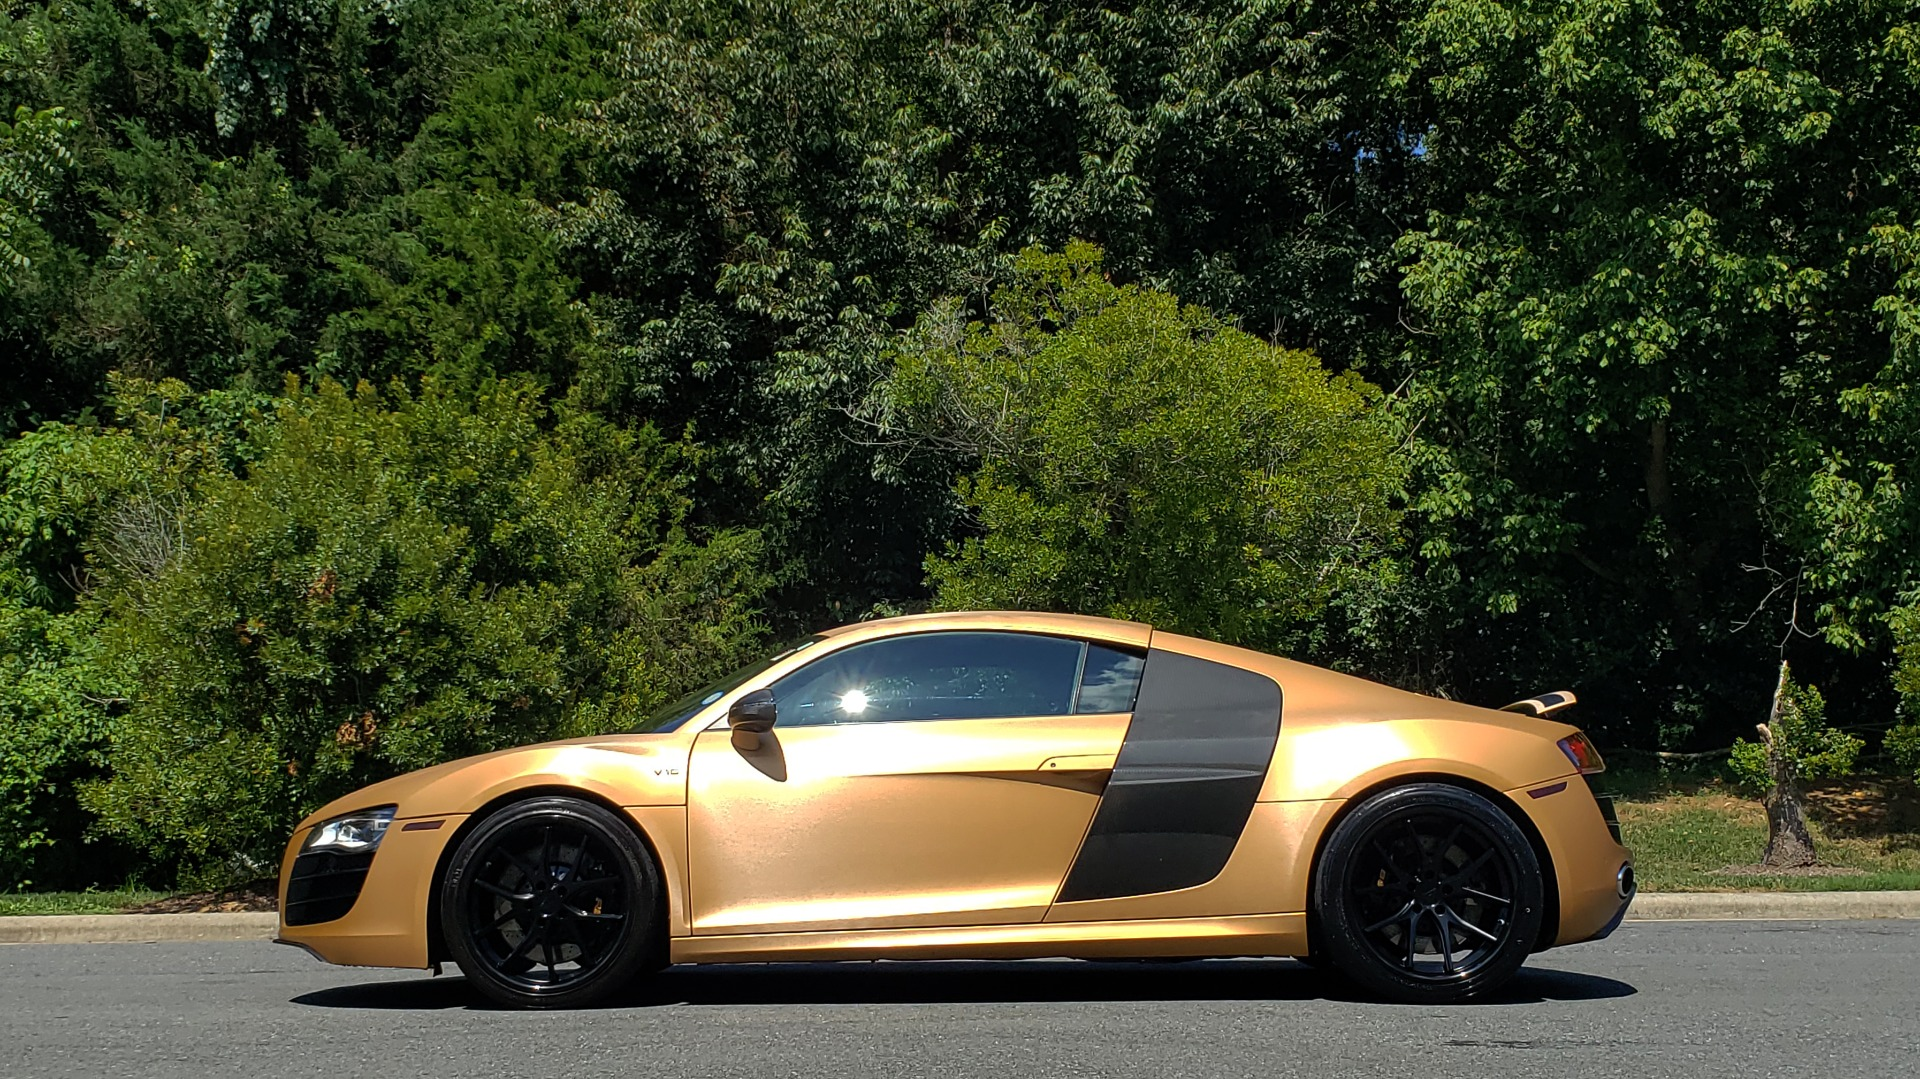 Used 2012 Audi R8 V10 5.2L / CUST WRAP BRUSHED BRONZE / NAV / B&O SOUND / CUST 19IN WHLS for sale $79,999 at Formula Imports in Charlotte NC 28227 4